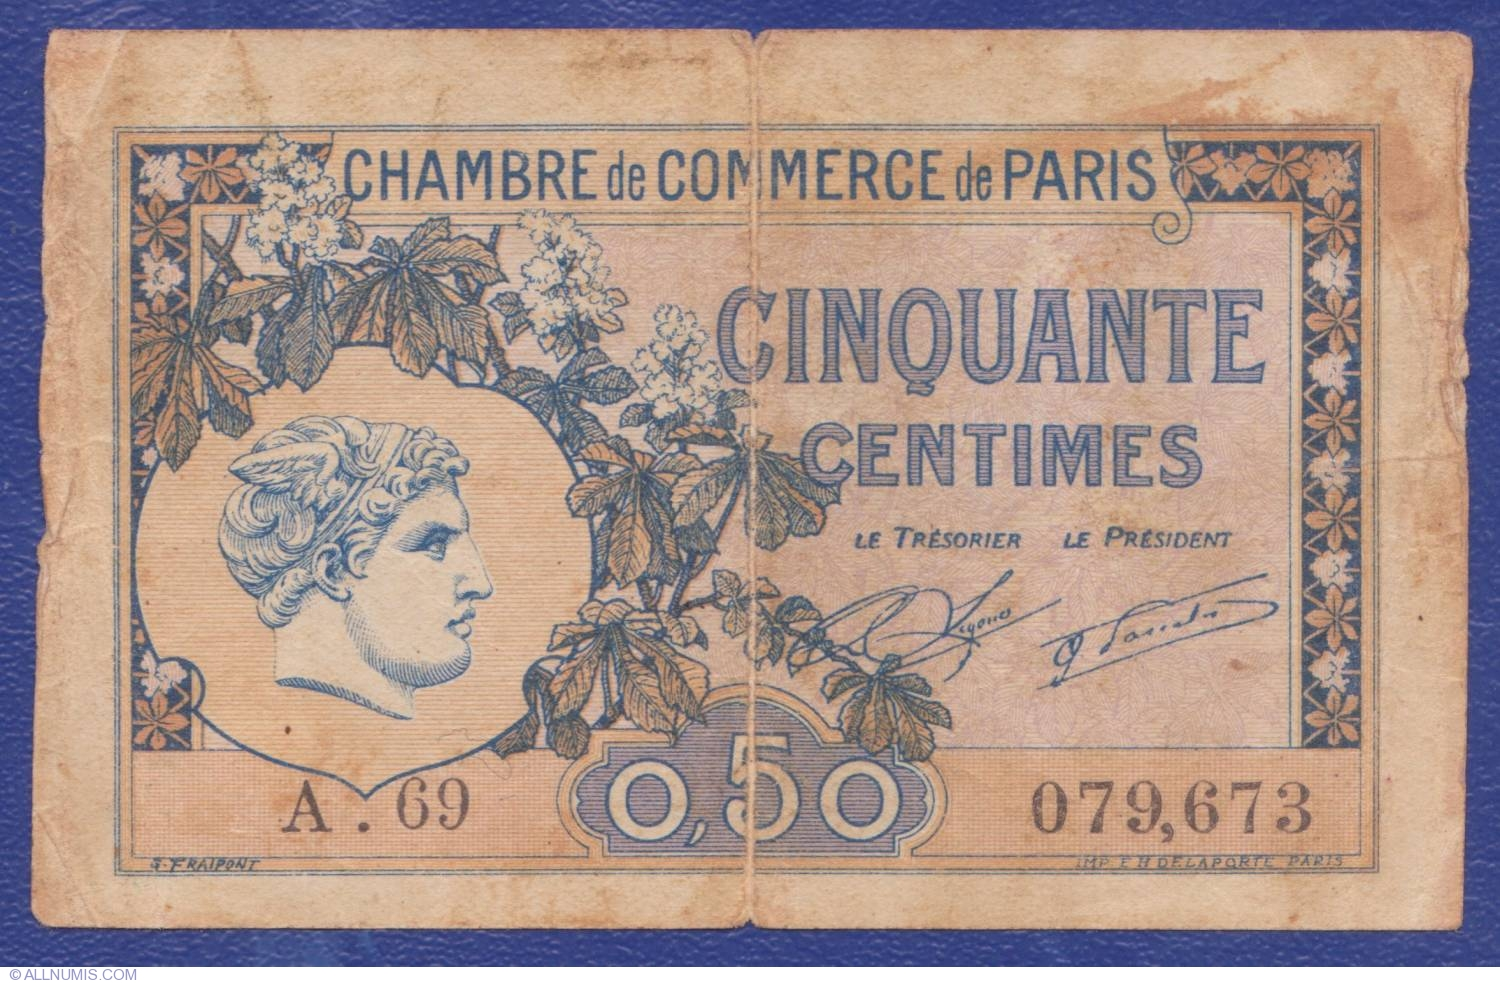 50 centimes 1920 paris chambre de commerce france for Chambre de commerce de varennes